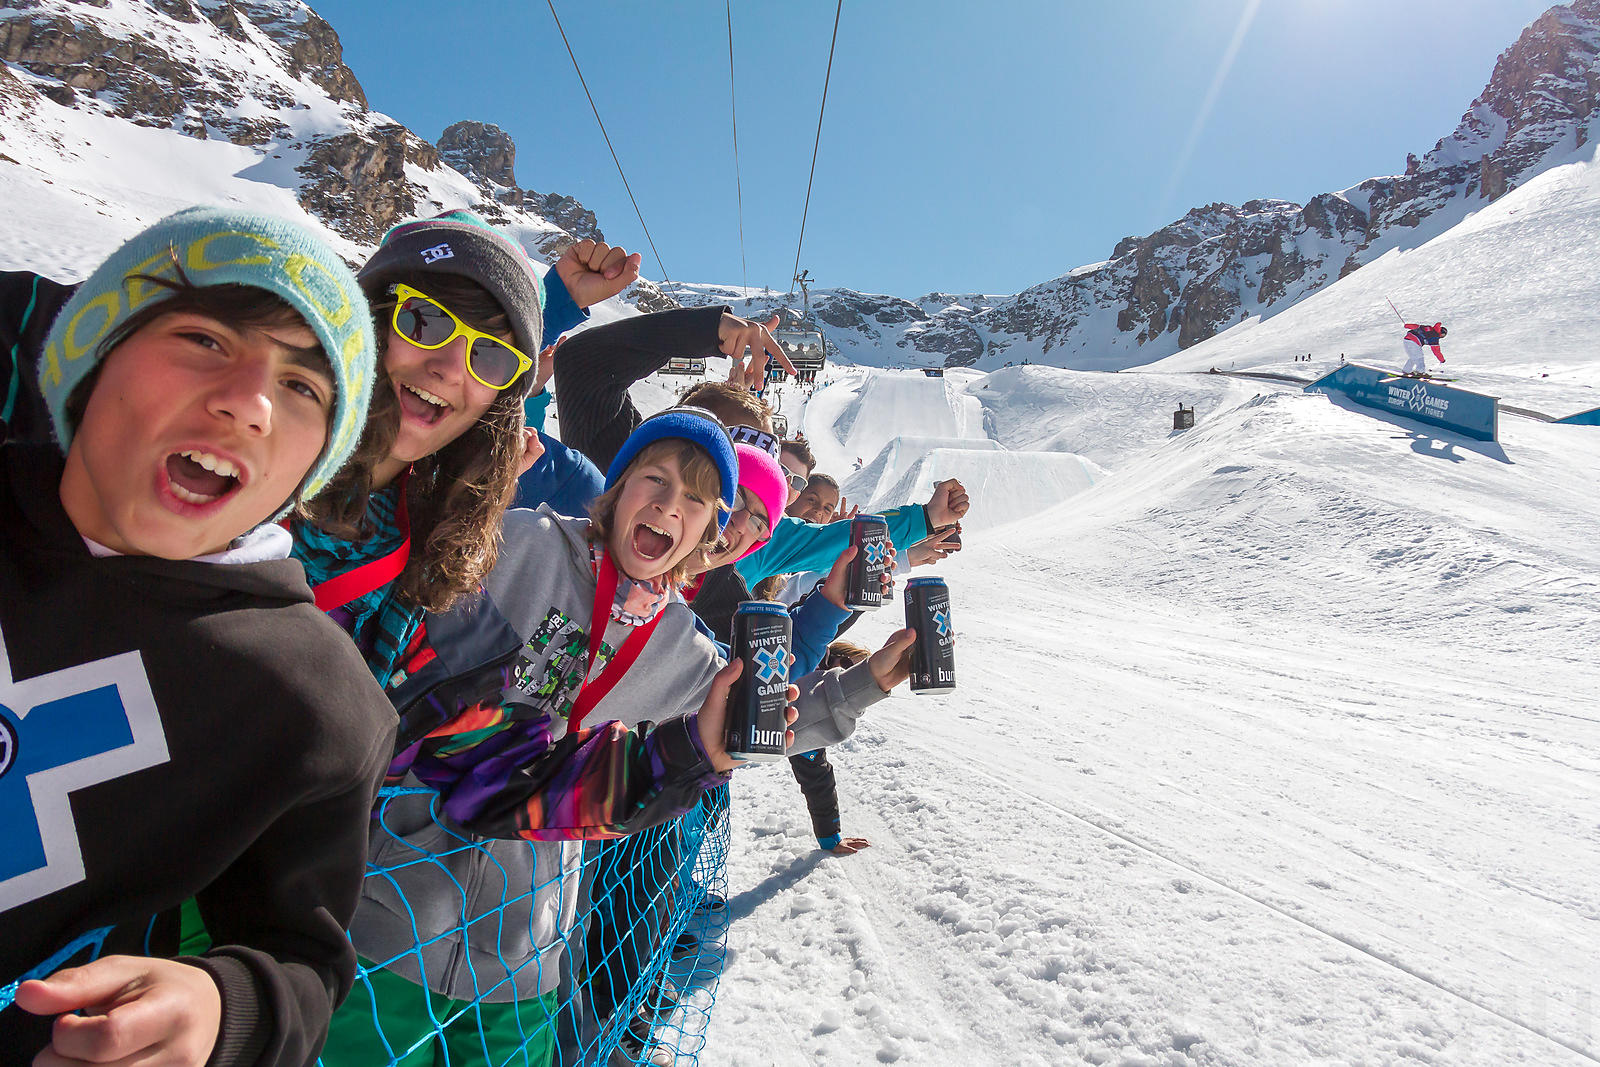 March 14th, 2012 - Tignes, France : Ski Slope Women at the Winter X Games 2012